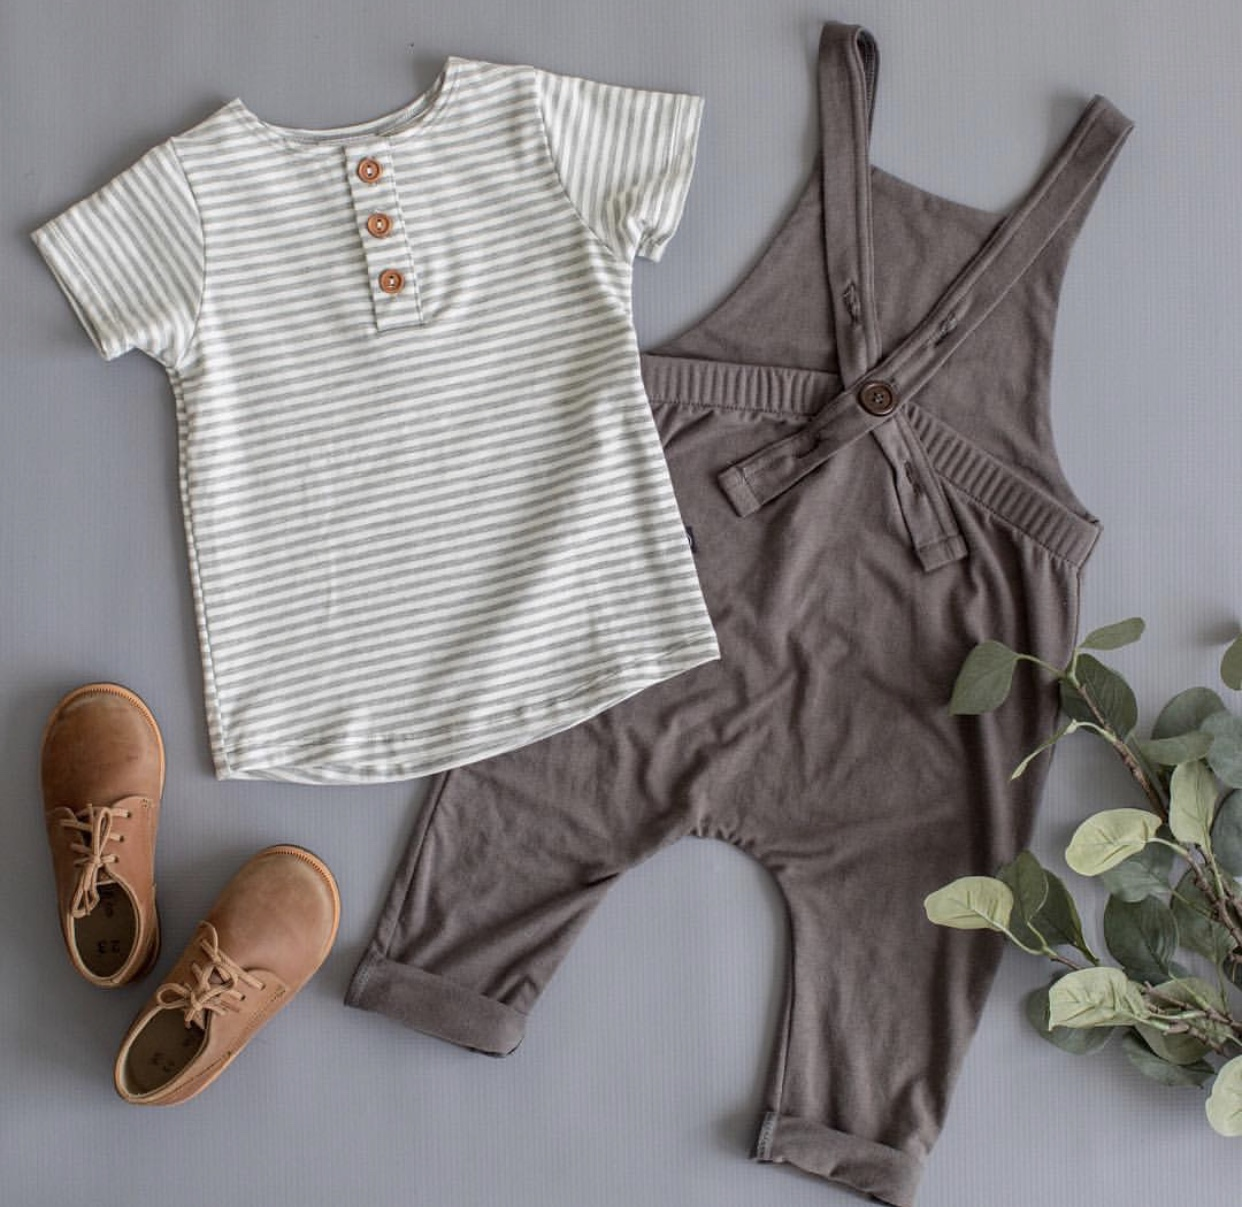 - 1. Haven Kids ClothingHaven Kids clothing is one of my new favorite local shops and their spring line is so darn adorable. The neutral and minimal color scheme is just up my ally. My favorite spring item that I can't wait to get Q into are the overalls. The drop crotch style can be perfectly paired with a long or short sleeve tee for the cooler spring days, and will be an awesome transition to those hot summer days where he won't need to wear any shirt underneath. They have a 3 button holes allowing for just the right fit when adjusting. This is sure to be on repeat for us.Shop Haven Kids